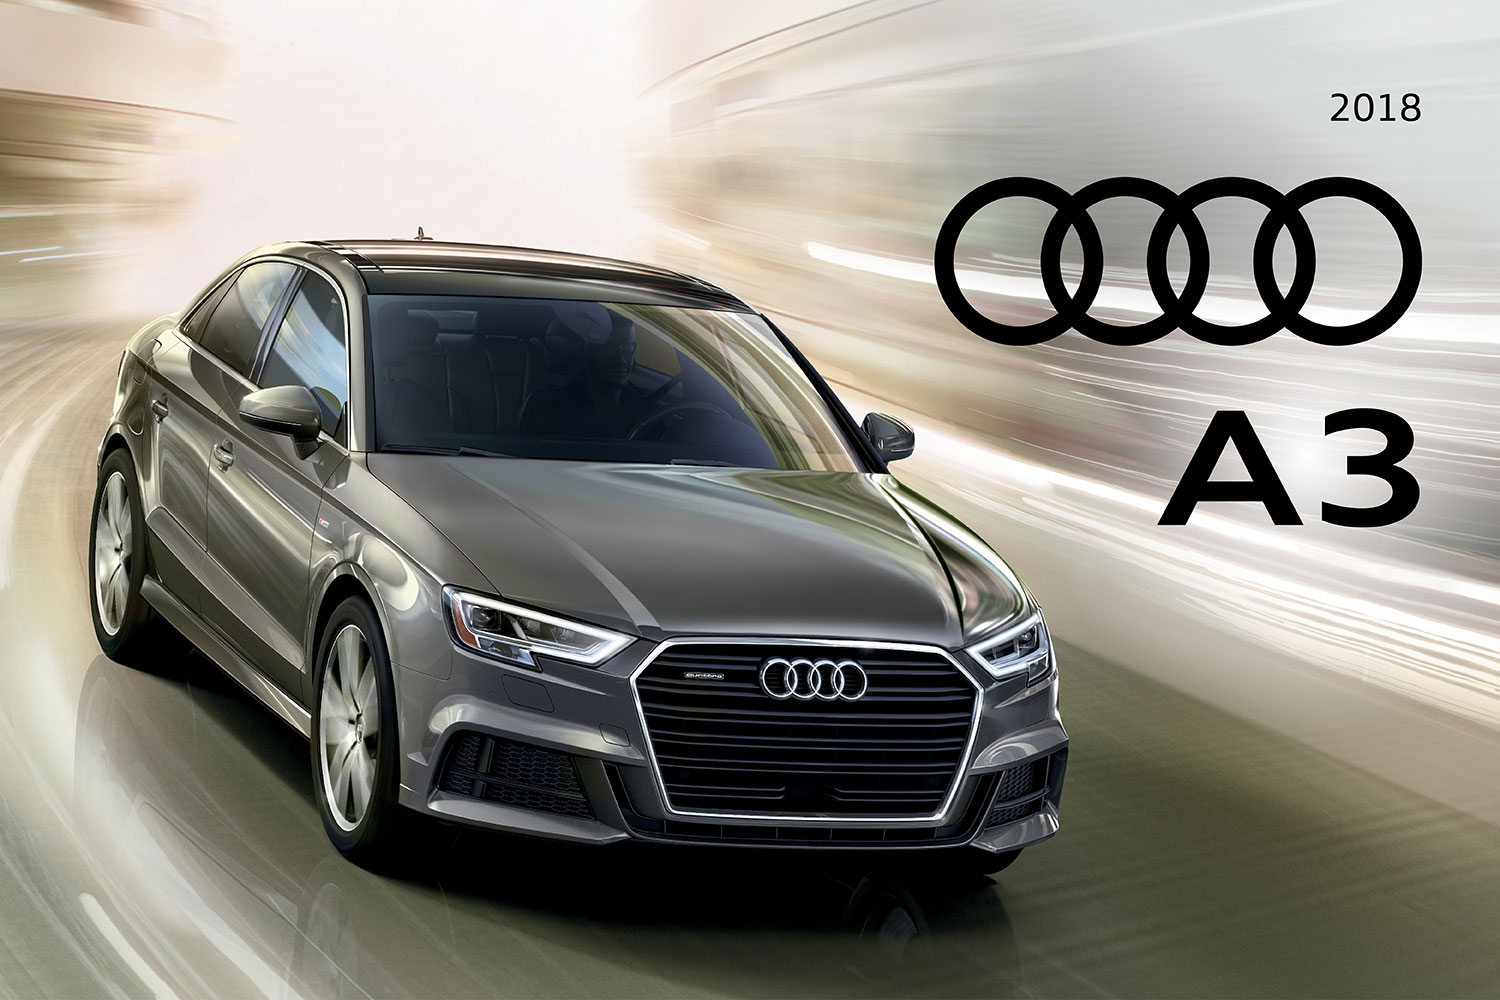 Valenti Audi | New Audi dealership in Watertown, CT 06795